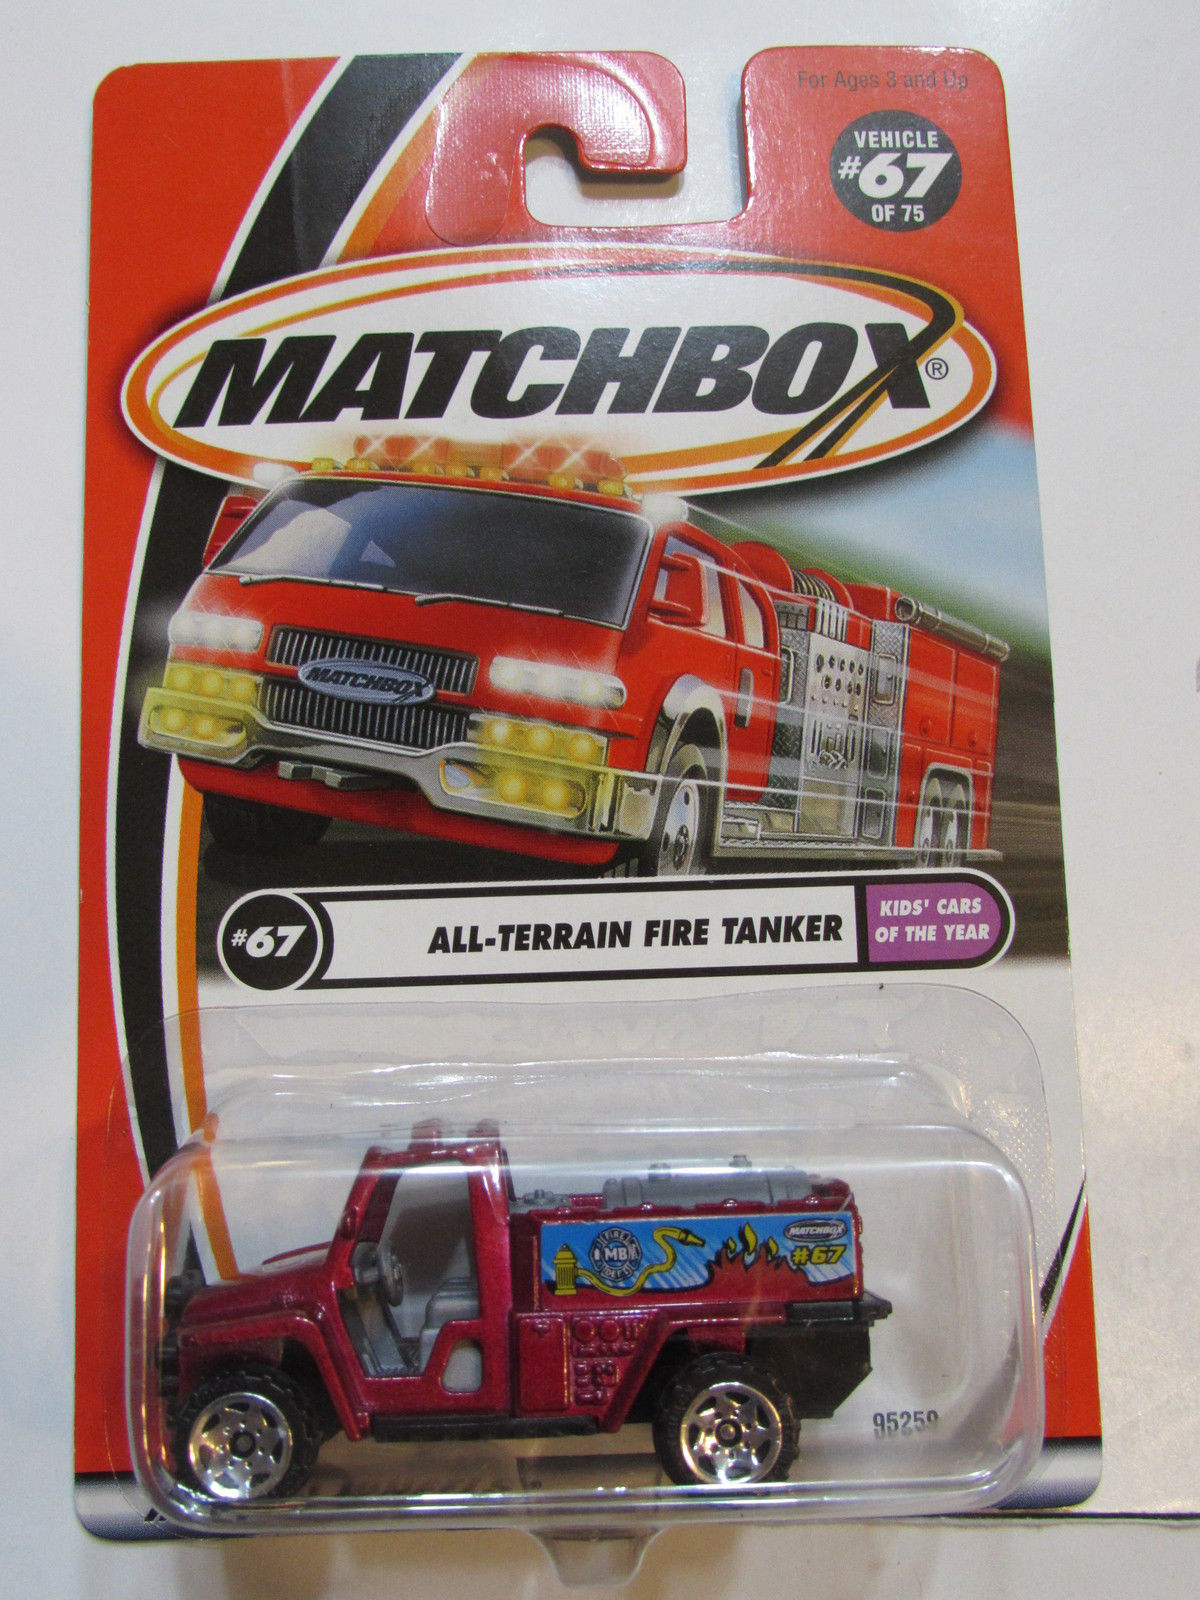 MATCHBOX 2001 #67 OF 75 ALL - TERRAIN FIRE TANKER - KIDS' CARS OF THE YEAR E+